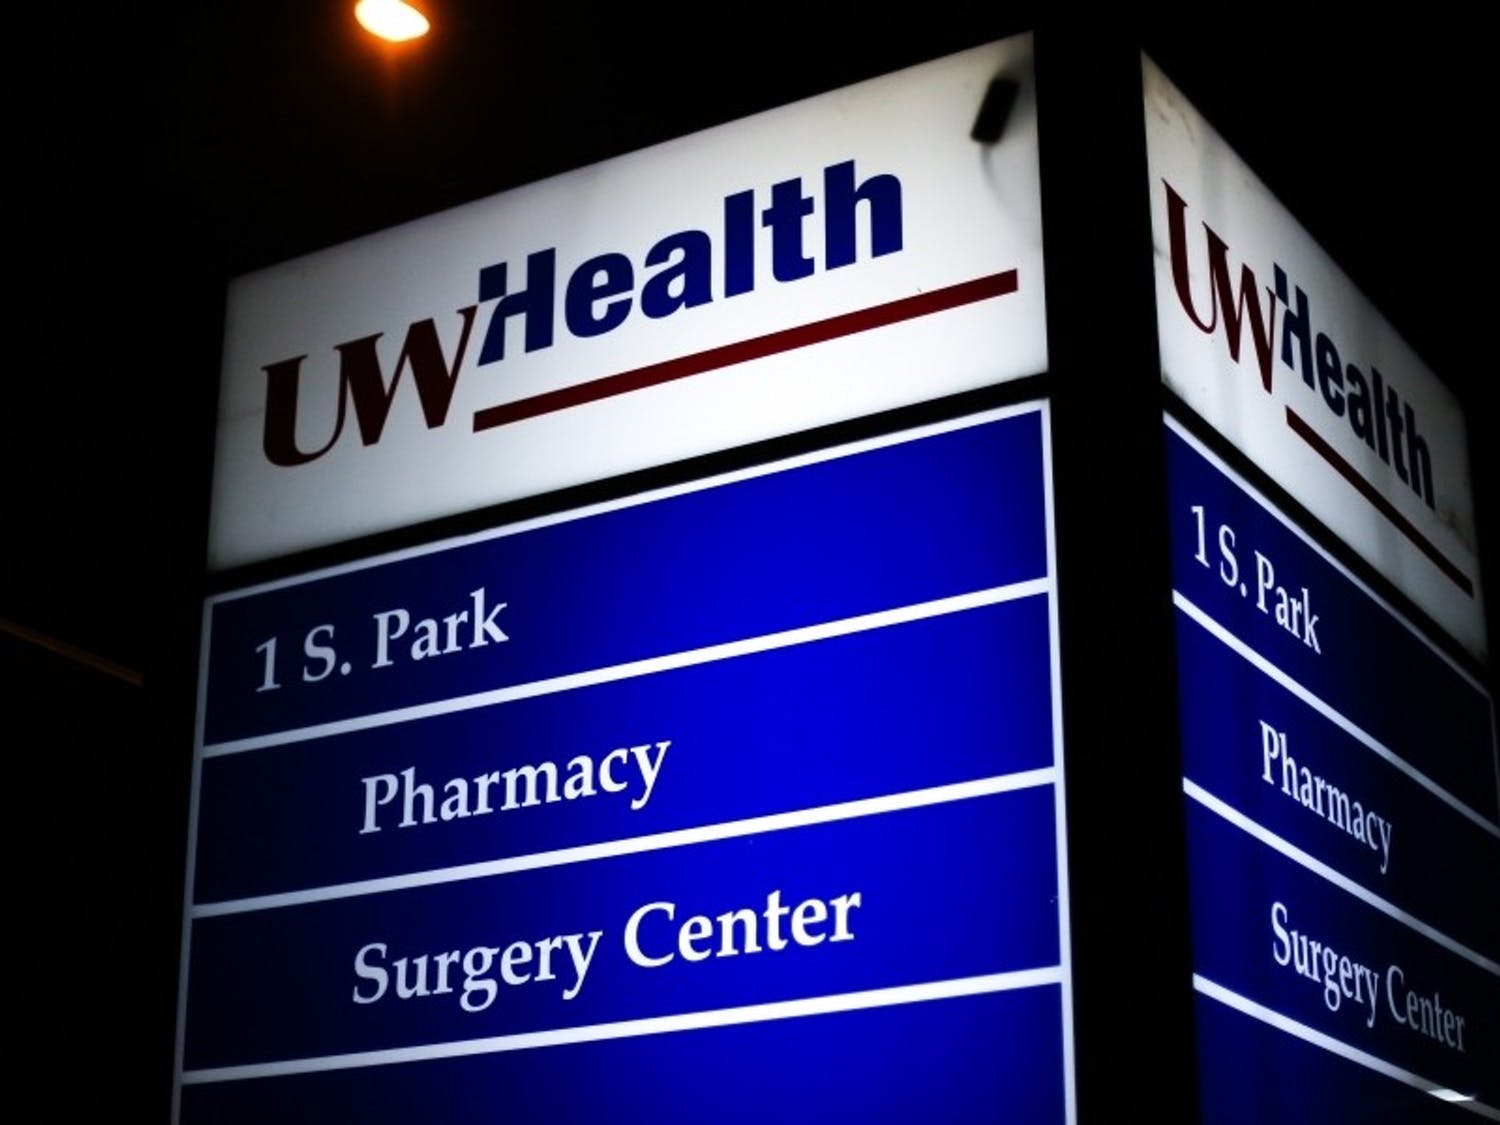 A UW Health doctor gave up his medical license after allegations of misconduct from patients and staff.